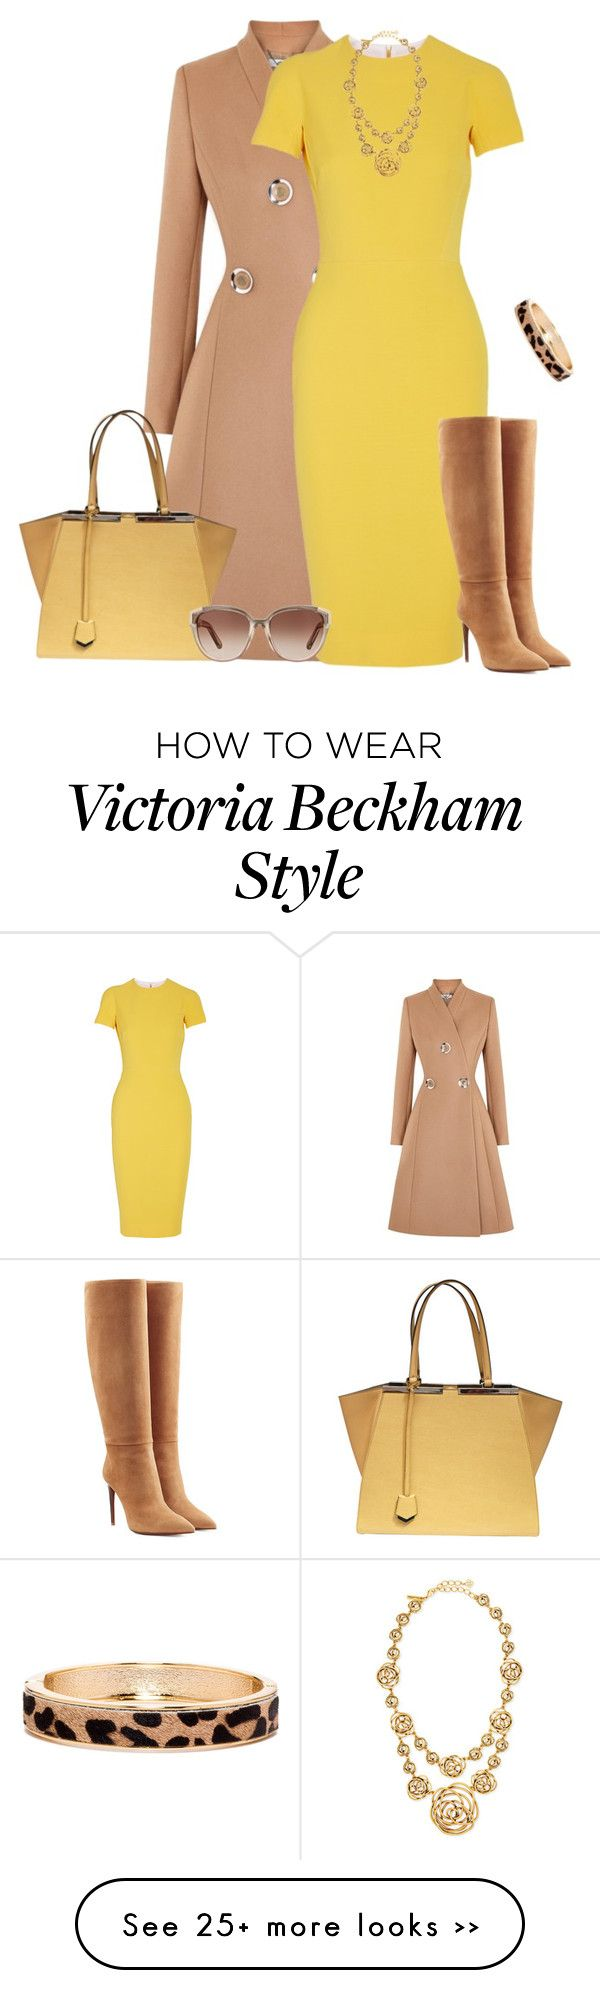 """outfit 2244"" by natalyag on Polyvore"